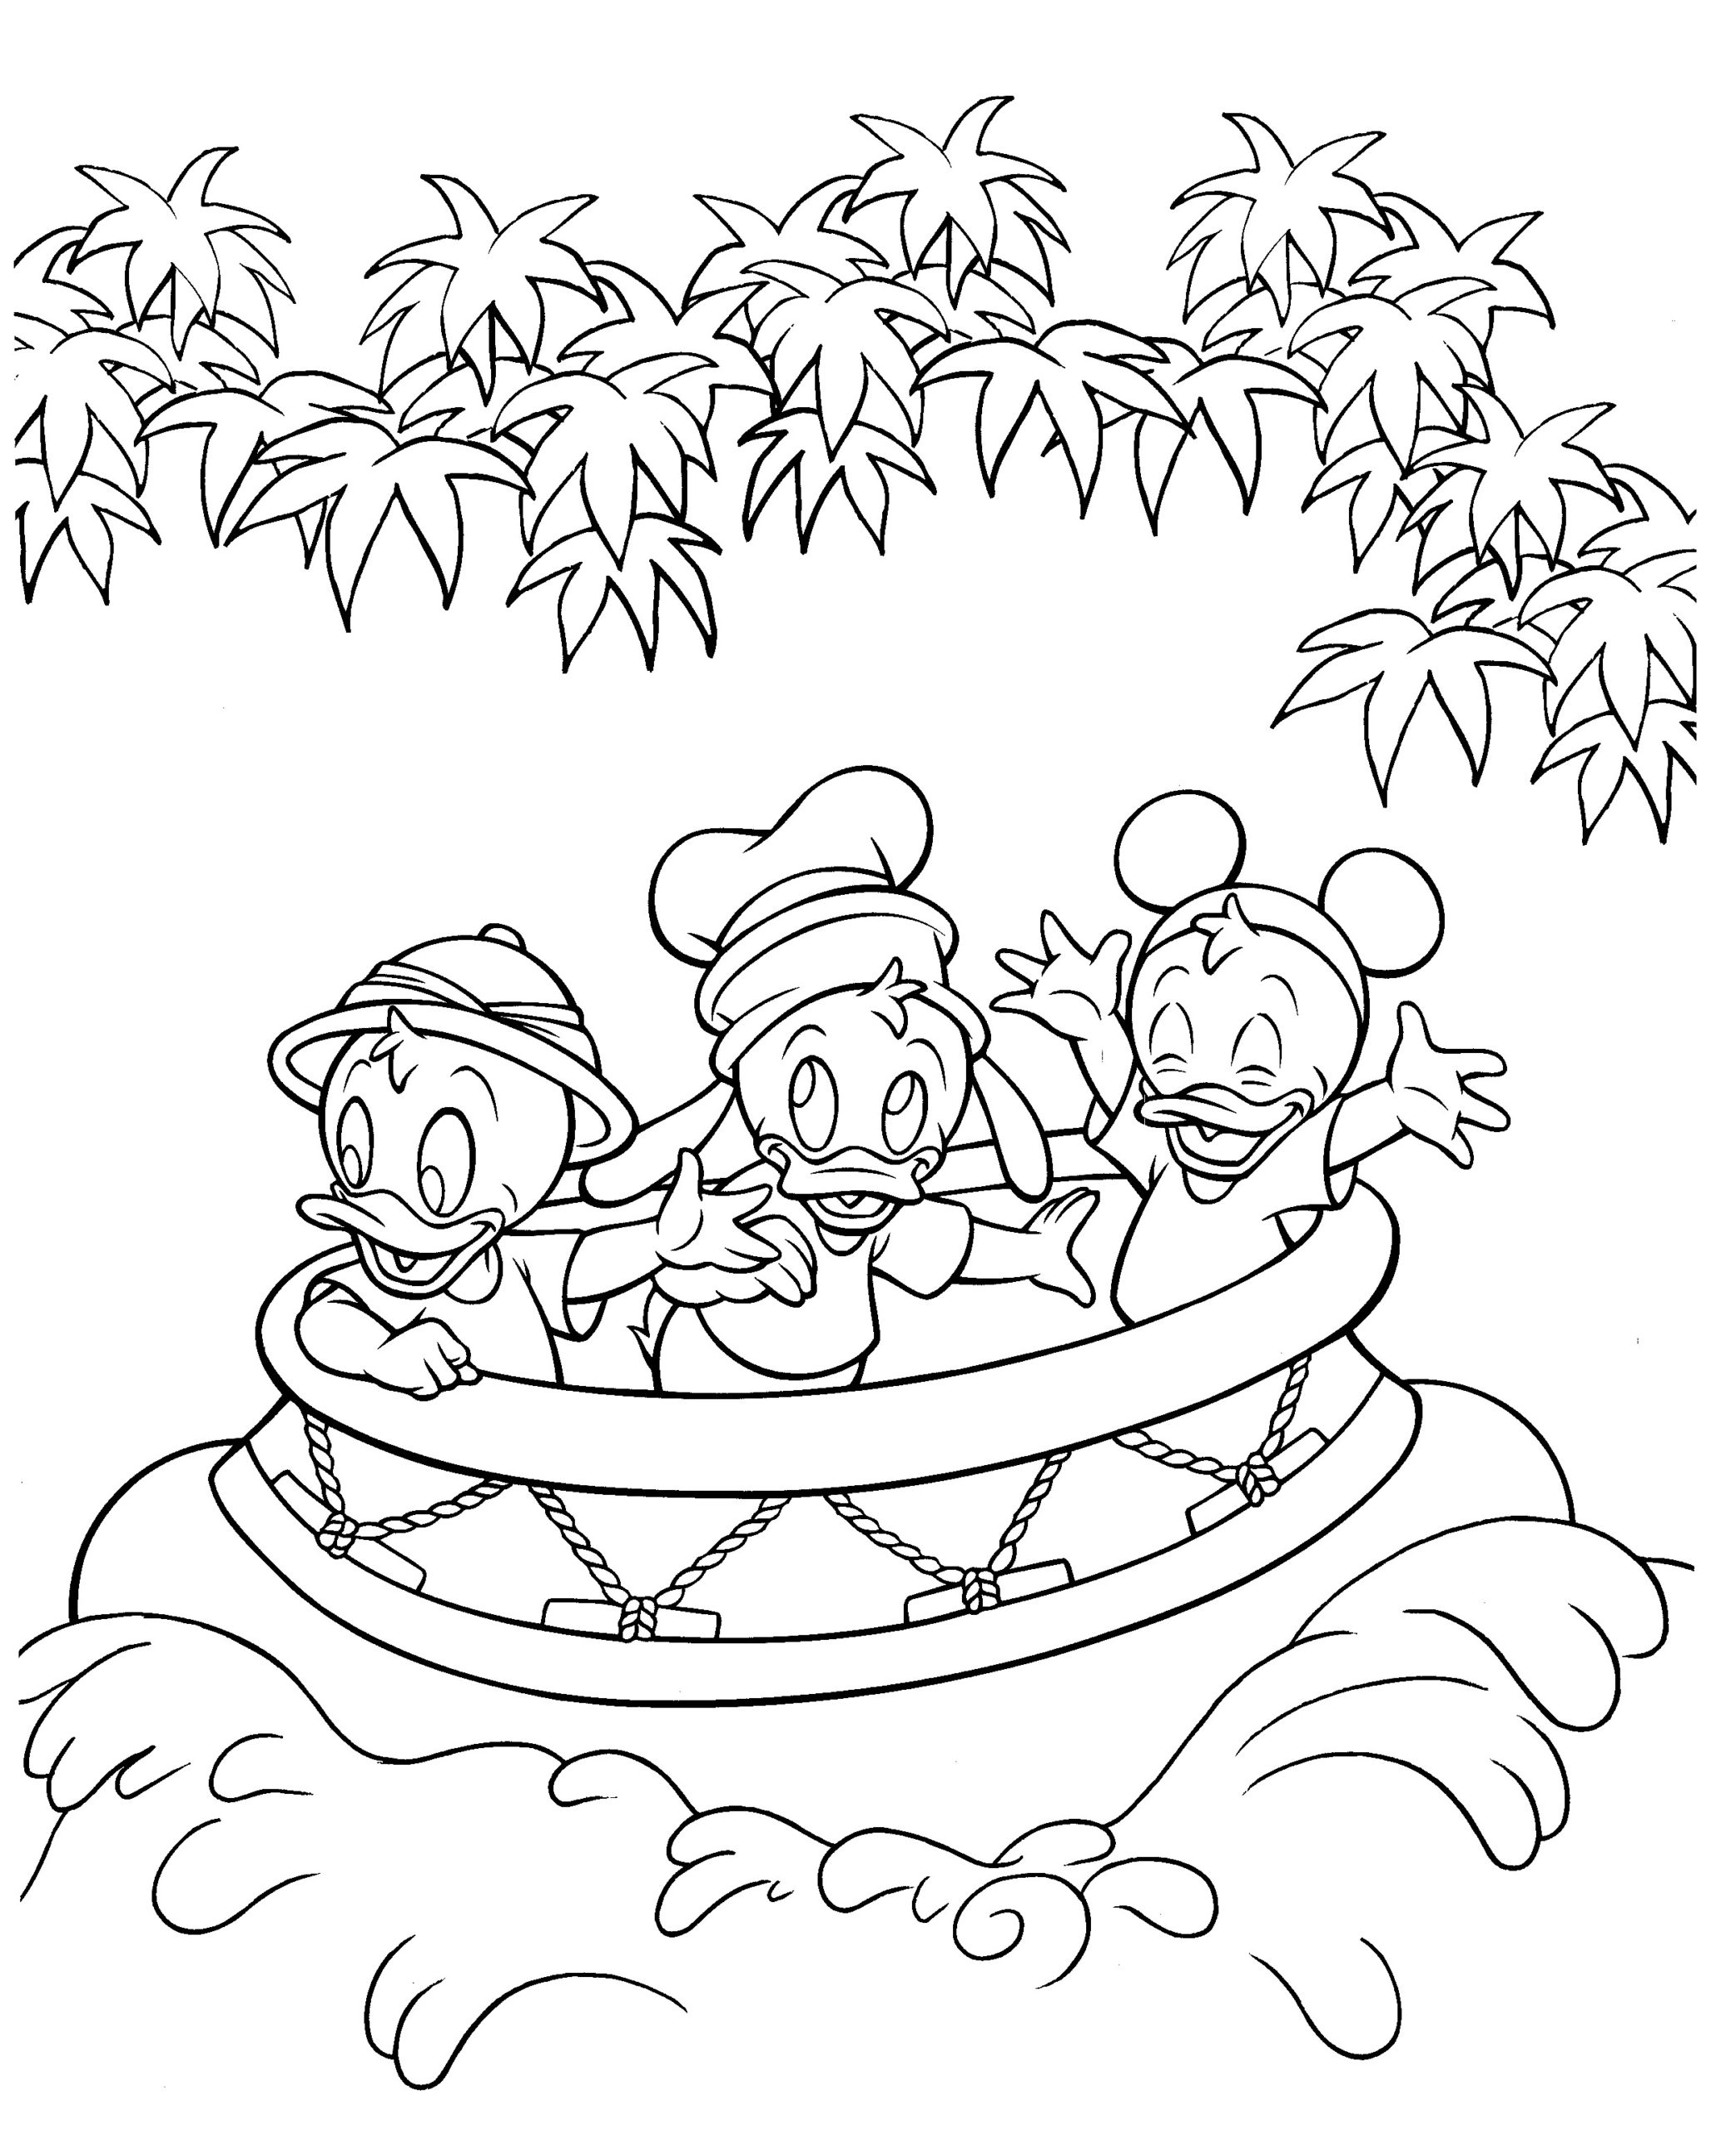 - Walt Disney World Coloring Pages — The Disney Nerds Podcast